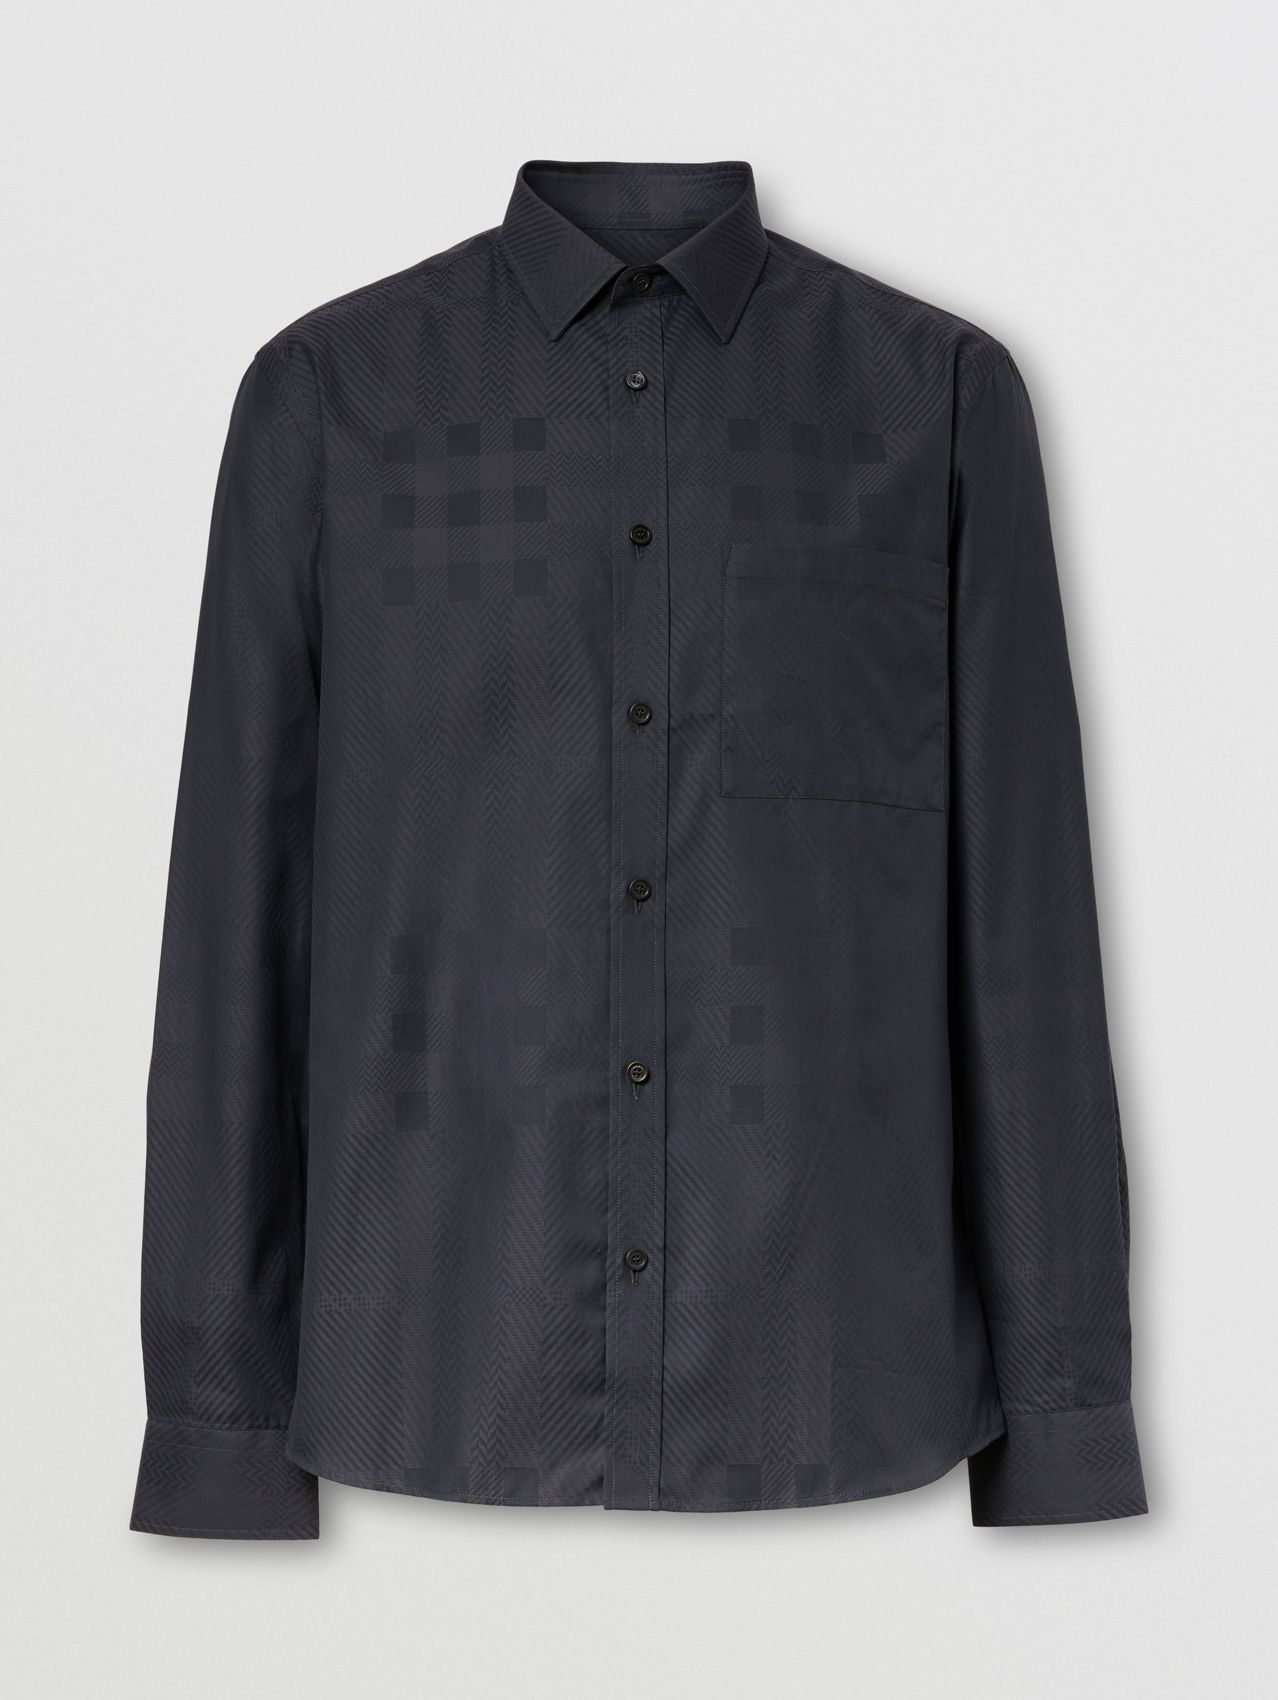 Slim Fit Check Cotton Jacquard Shirt in Charcoal